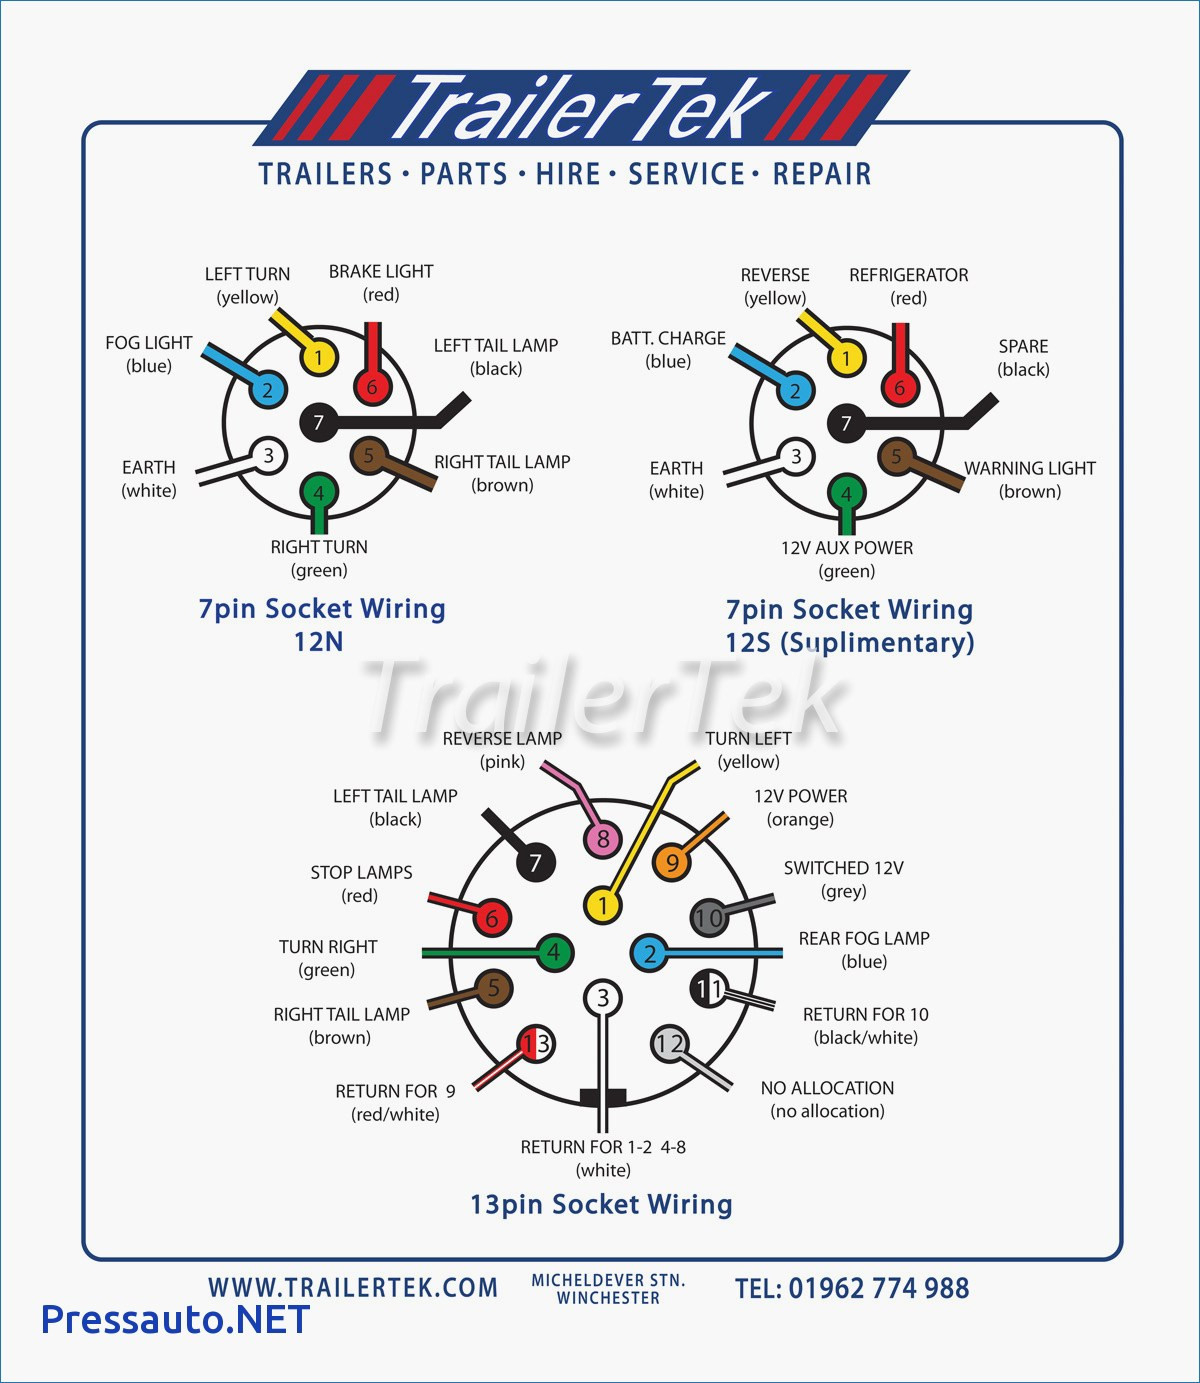 Towbar Fitting Trailertek Of 7 Way Trailer Plug Wiring Diagram To In - Wiring Diagram On 7 Way Trailer Plug